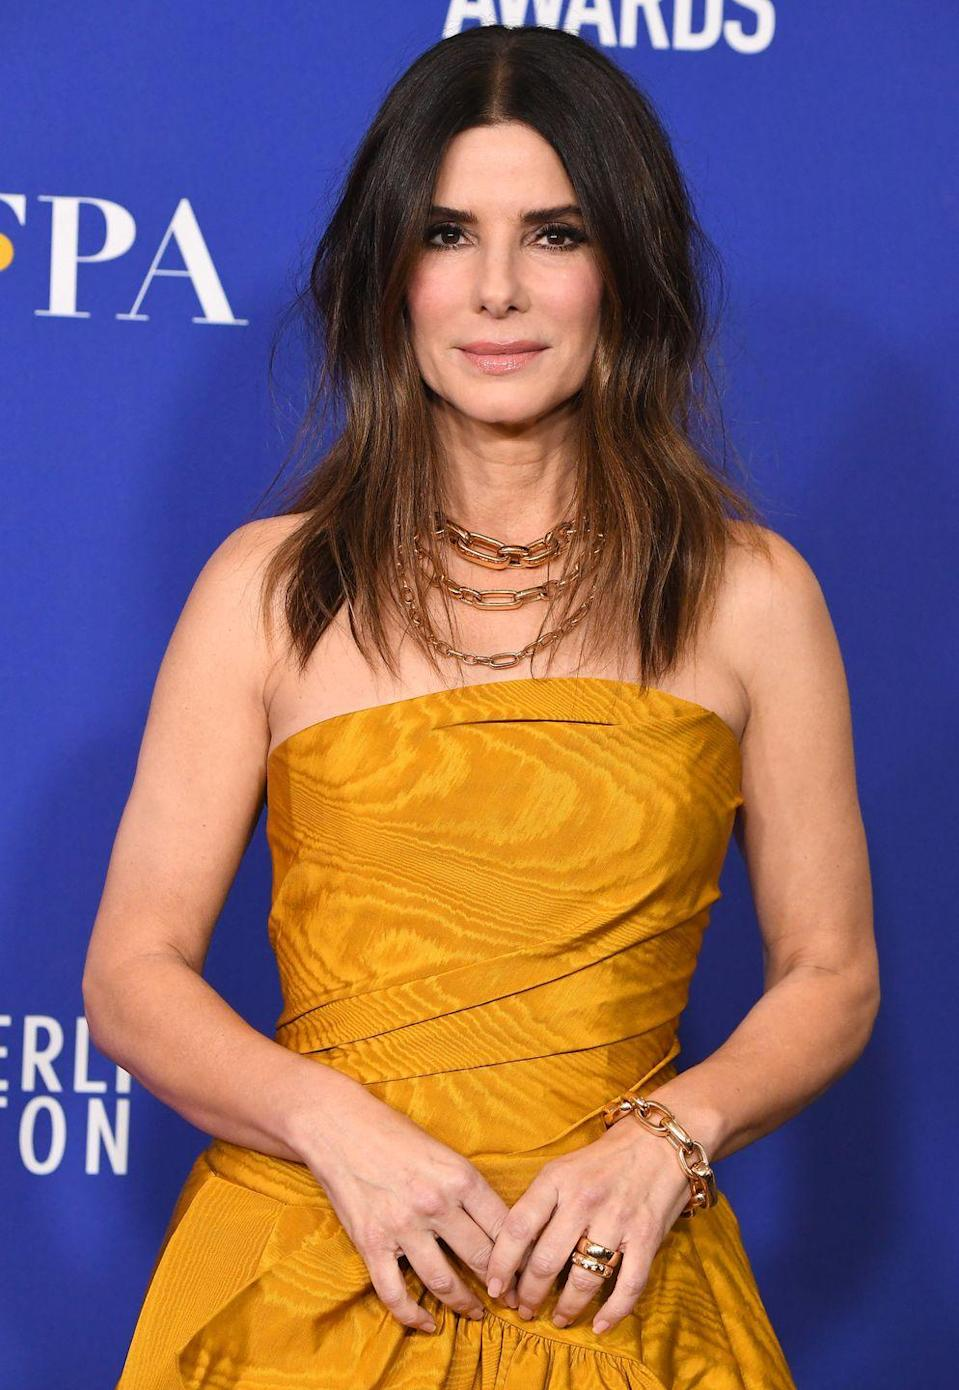 "<p><strong>Birthday: </strong>July 26</p><p><strong>Age Turning: </strong>56</p><p>If you're a big Sandra Bullock fan, might we suggest celebrating her big day with a marathon of <a href=""https://www.oprahmag.com/entertainment/tv-movies/g25636452/sandra-bullock-movies/"" rel=""nofollow noopener"" target=""_blank"" data-ylk=""slk:some of her best movies"" class=""link rapid-noclick-resp"">some of her best movies</a>?</p>"